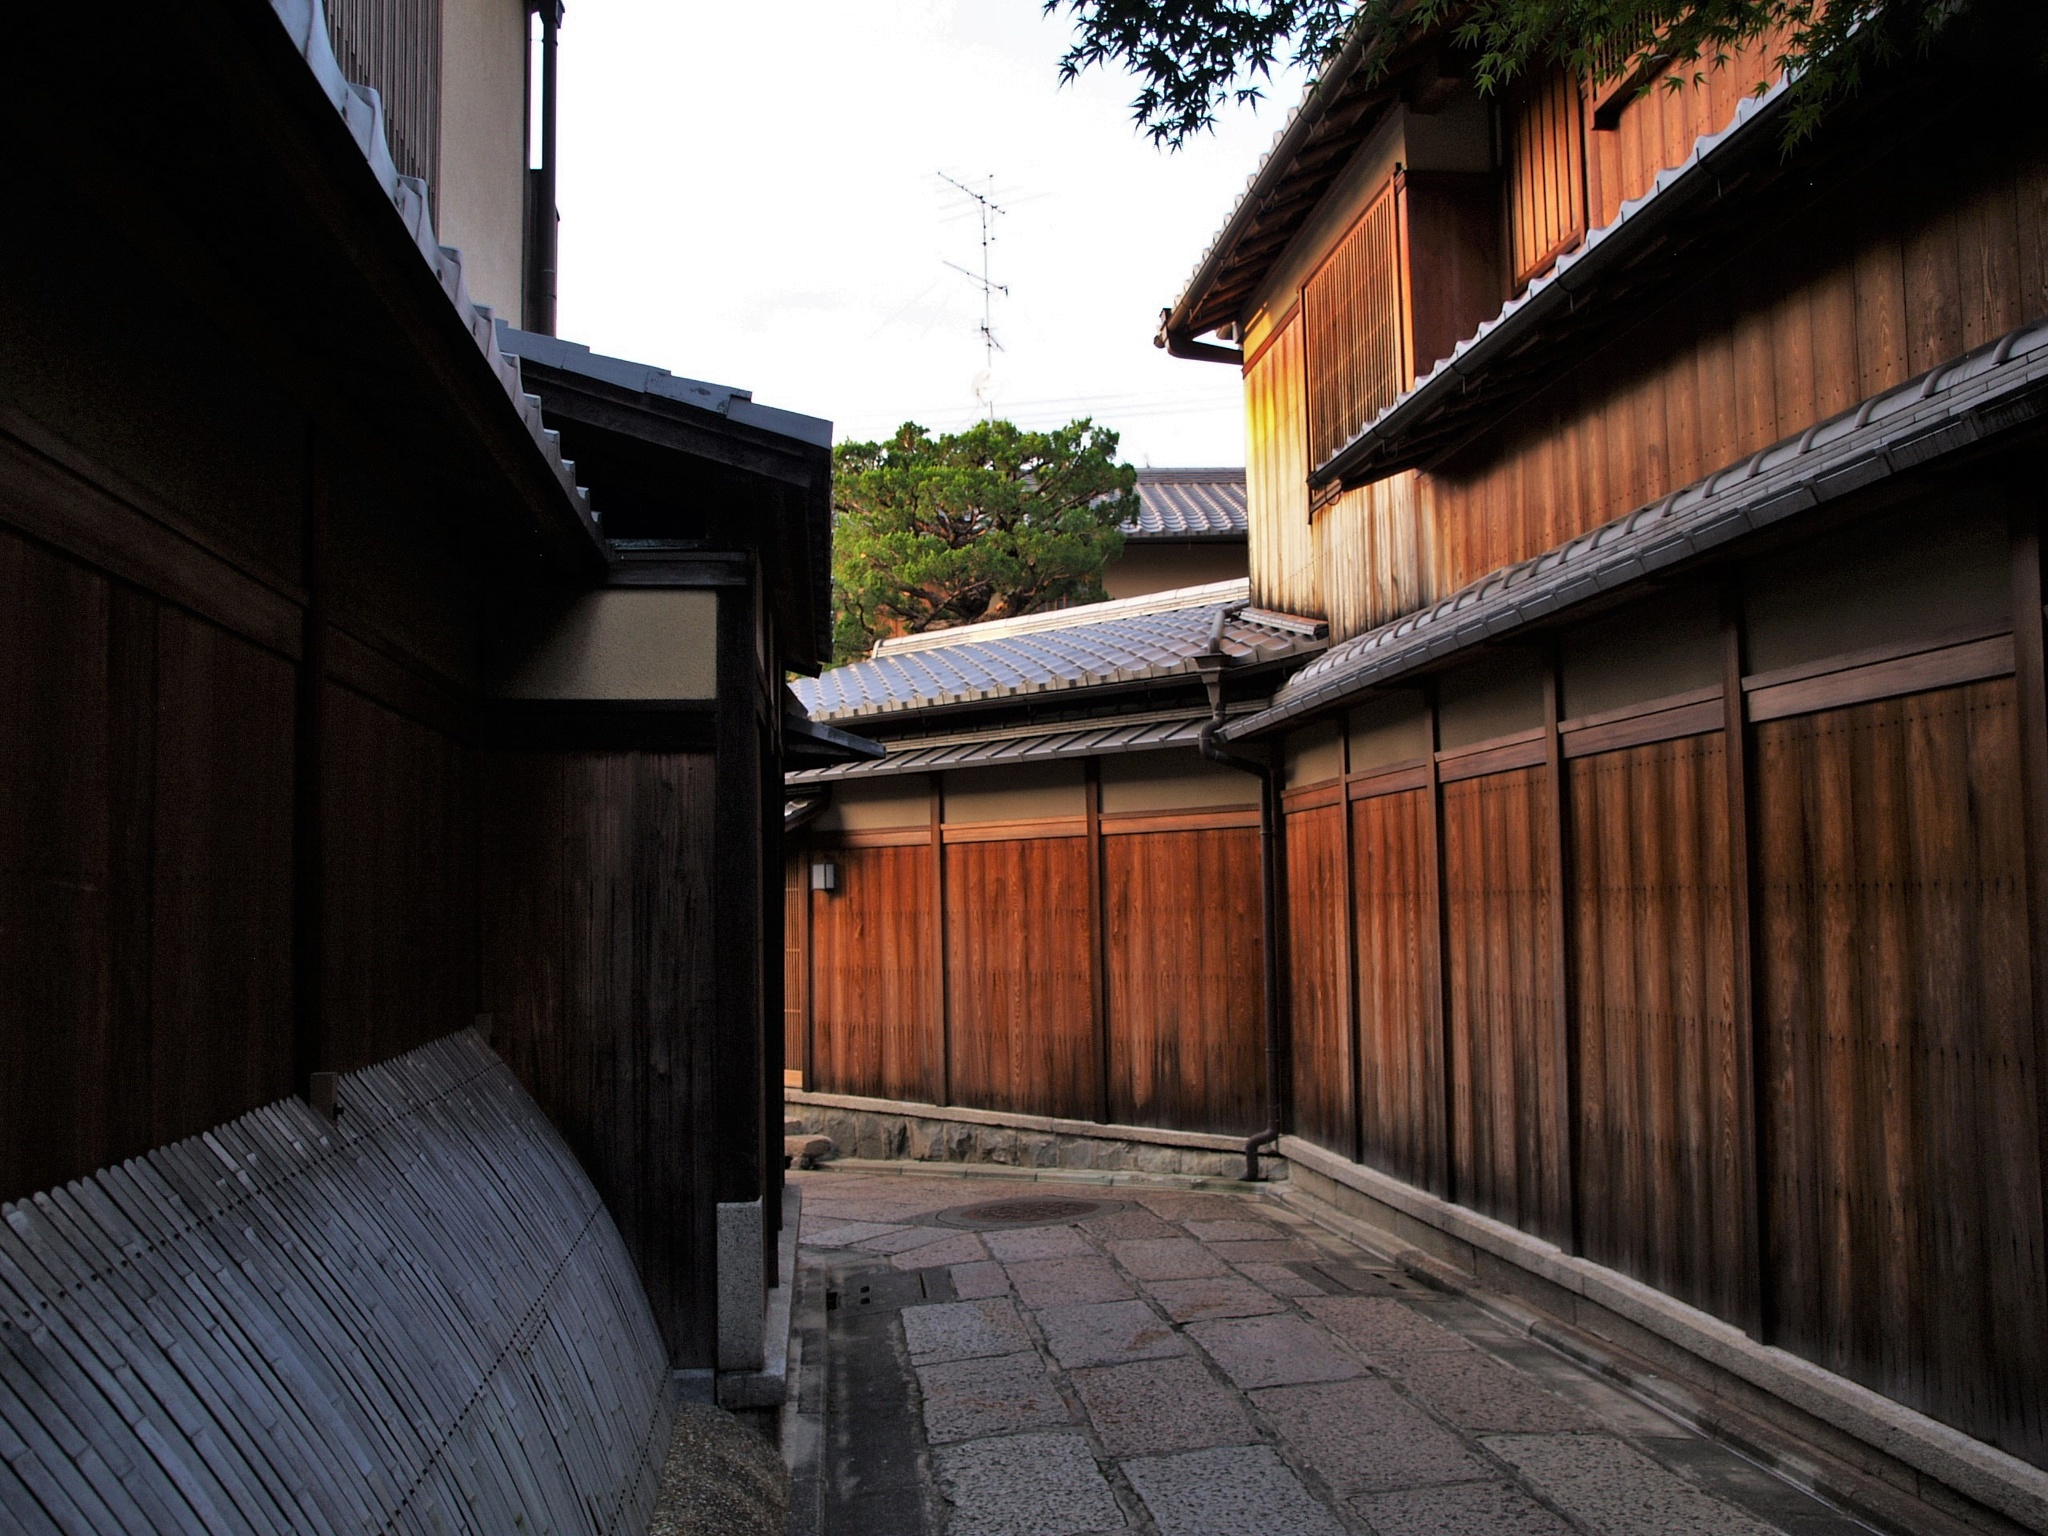 Kyoto stone fence alley by SANRI